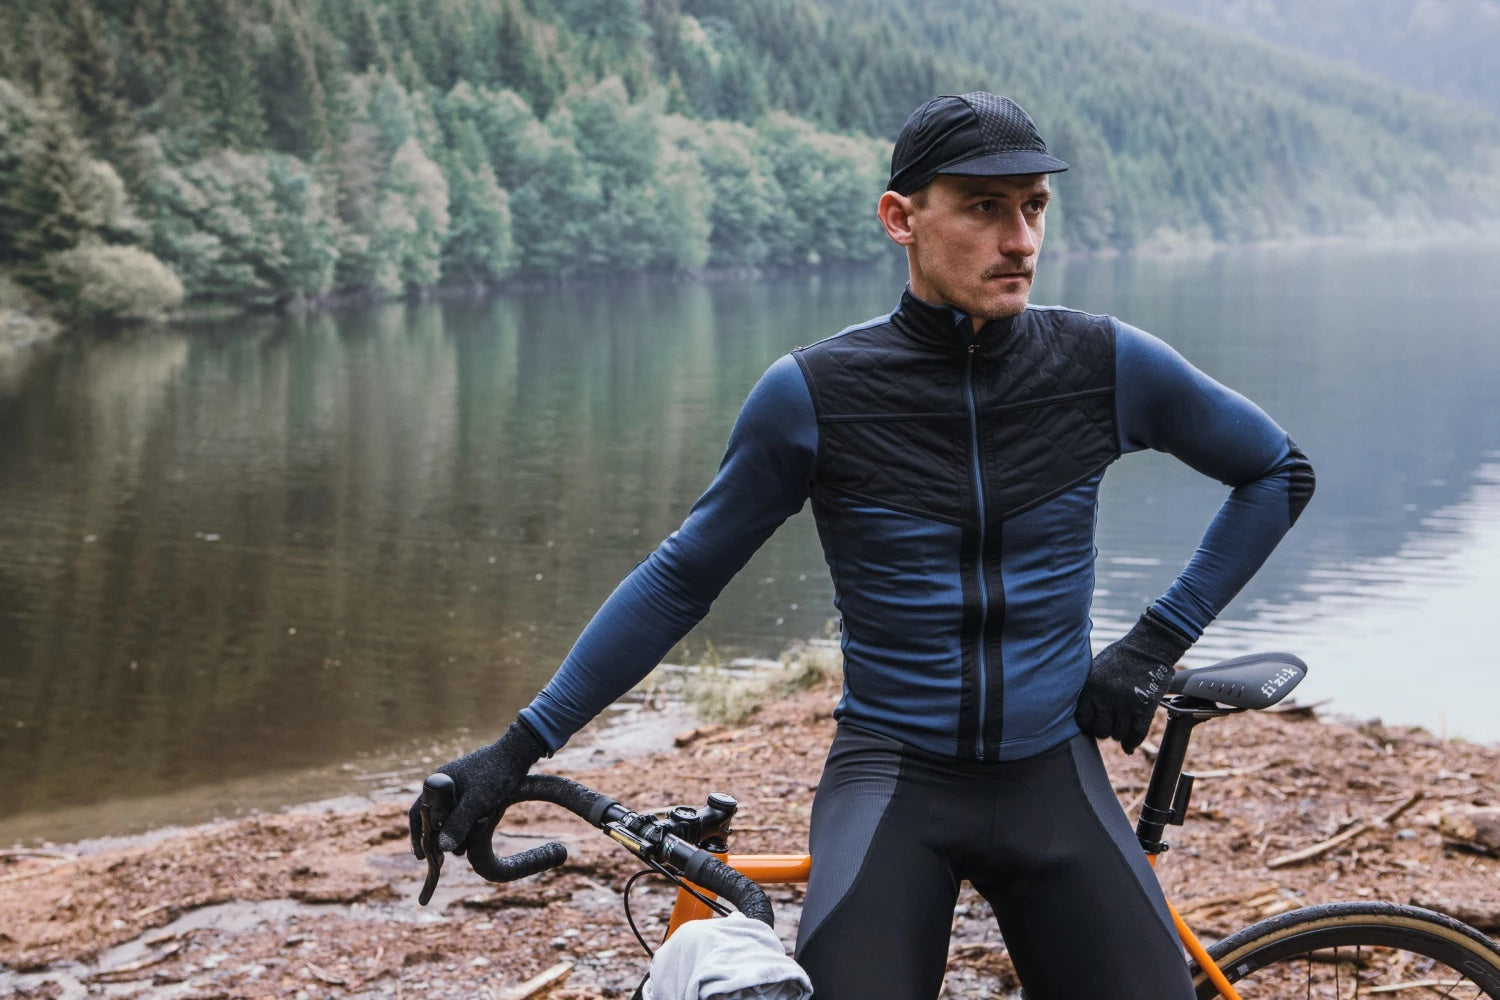 Wind blocking cycling jersey for autumn and spring